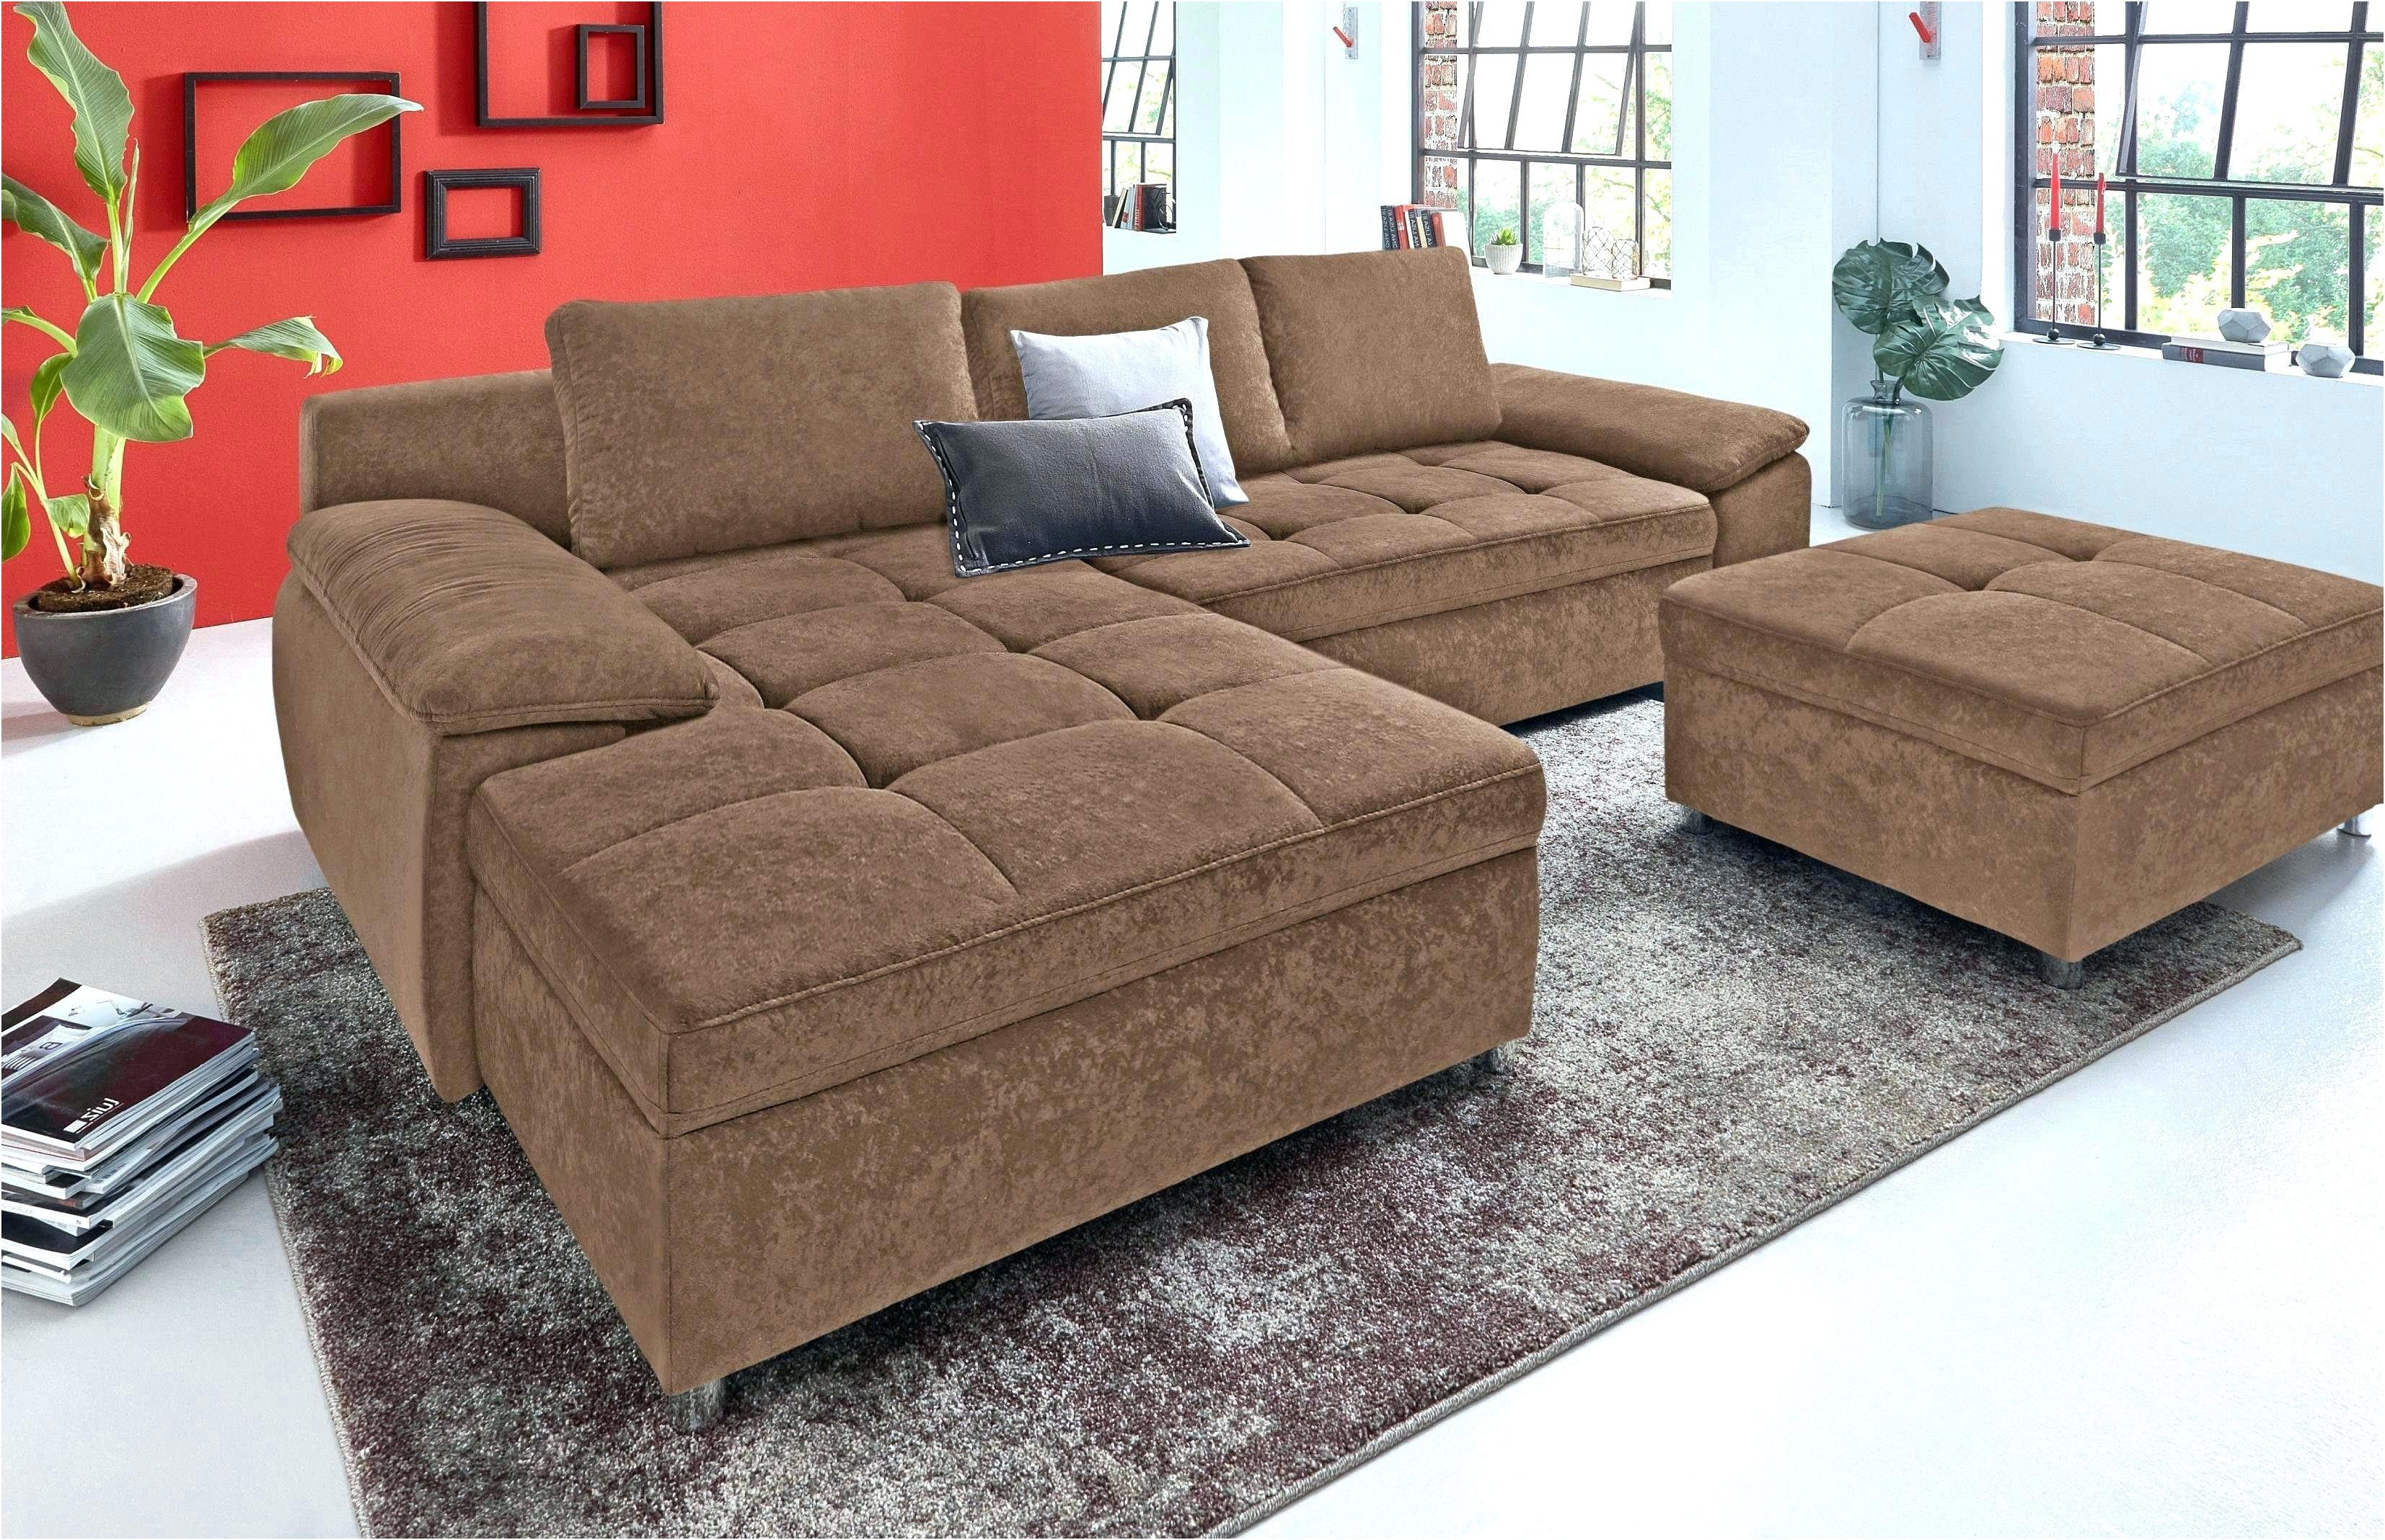 Ecksofa Kiydoo Relax Speziell Xxl Couch Grau Couch Möbel Sofa Sofa Bed For